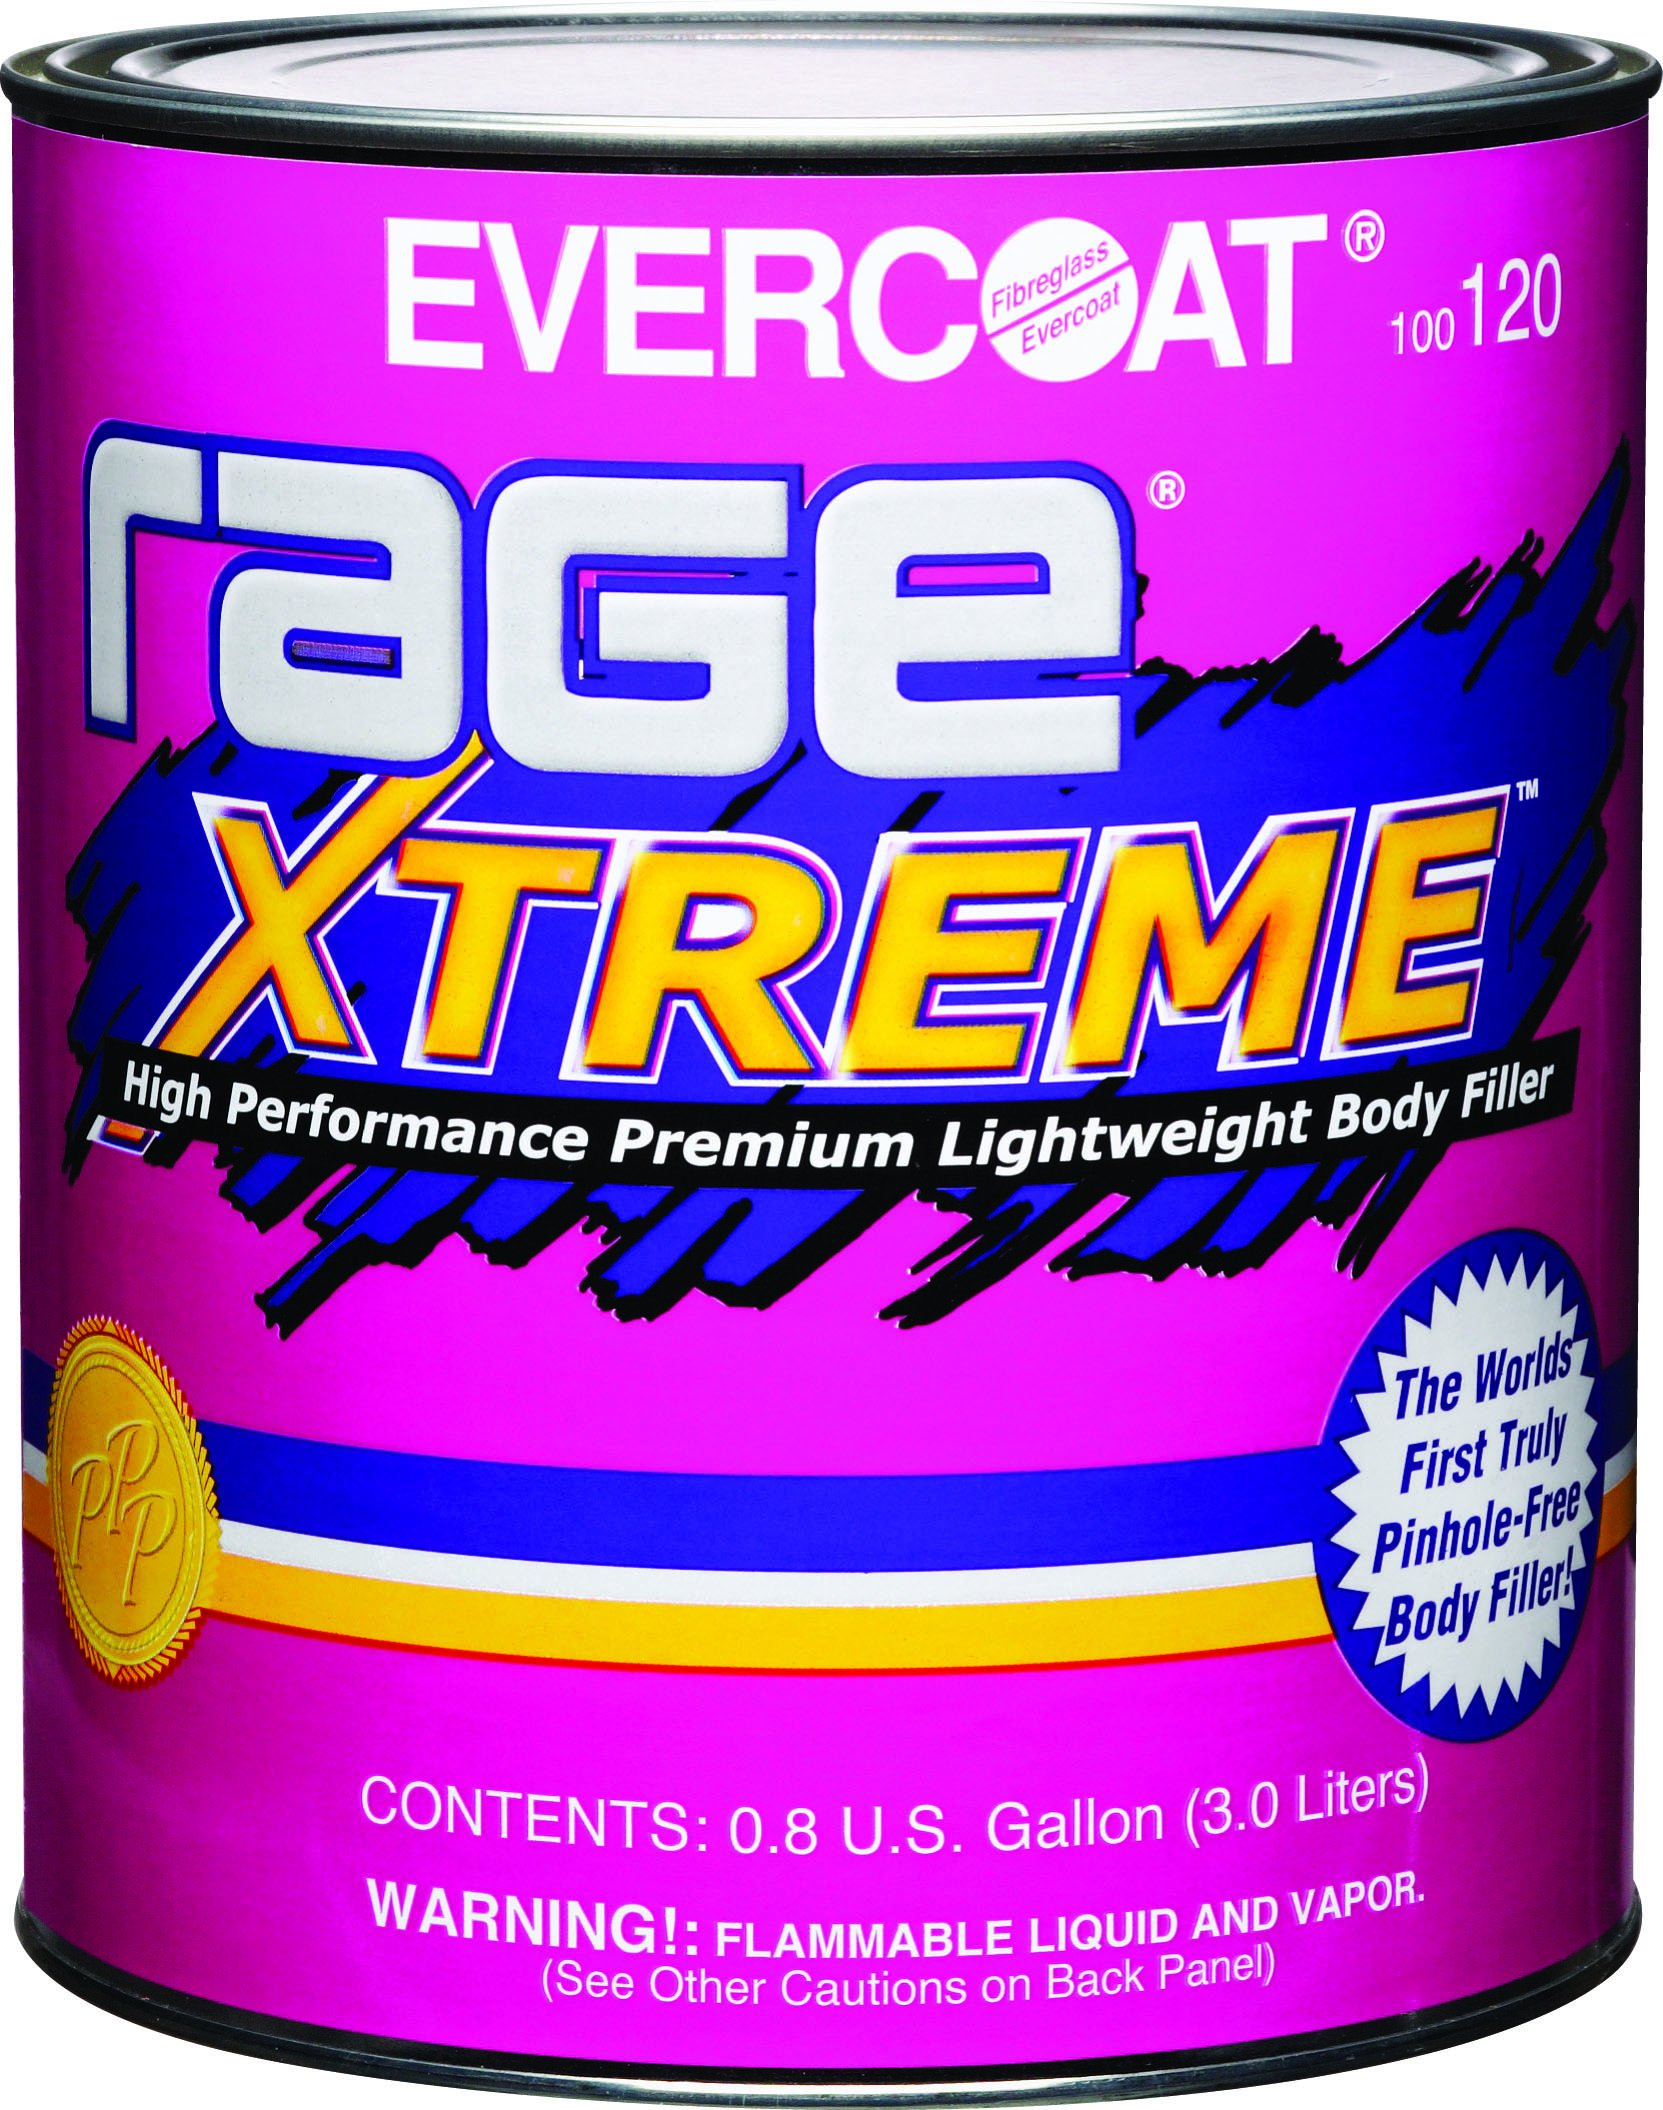 Evercoat 120 Rage Xtreme High Performance Premium Lightweight Body Filler - 0.8 Gallon